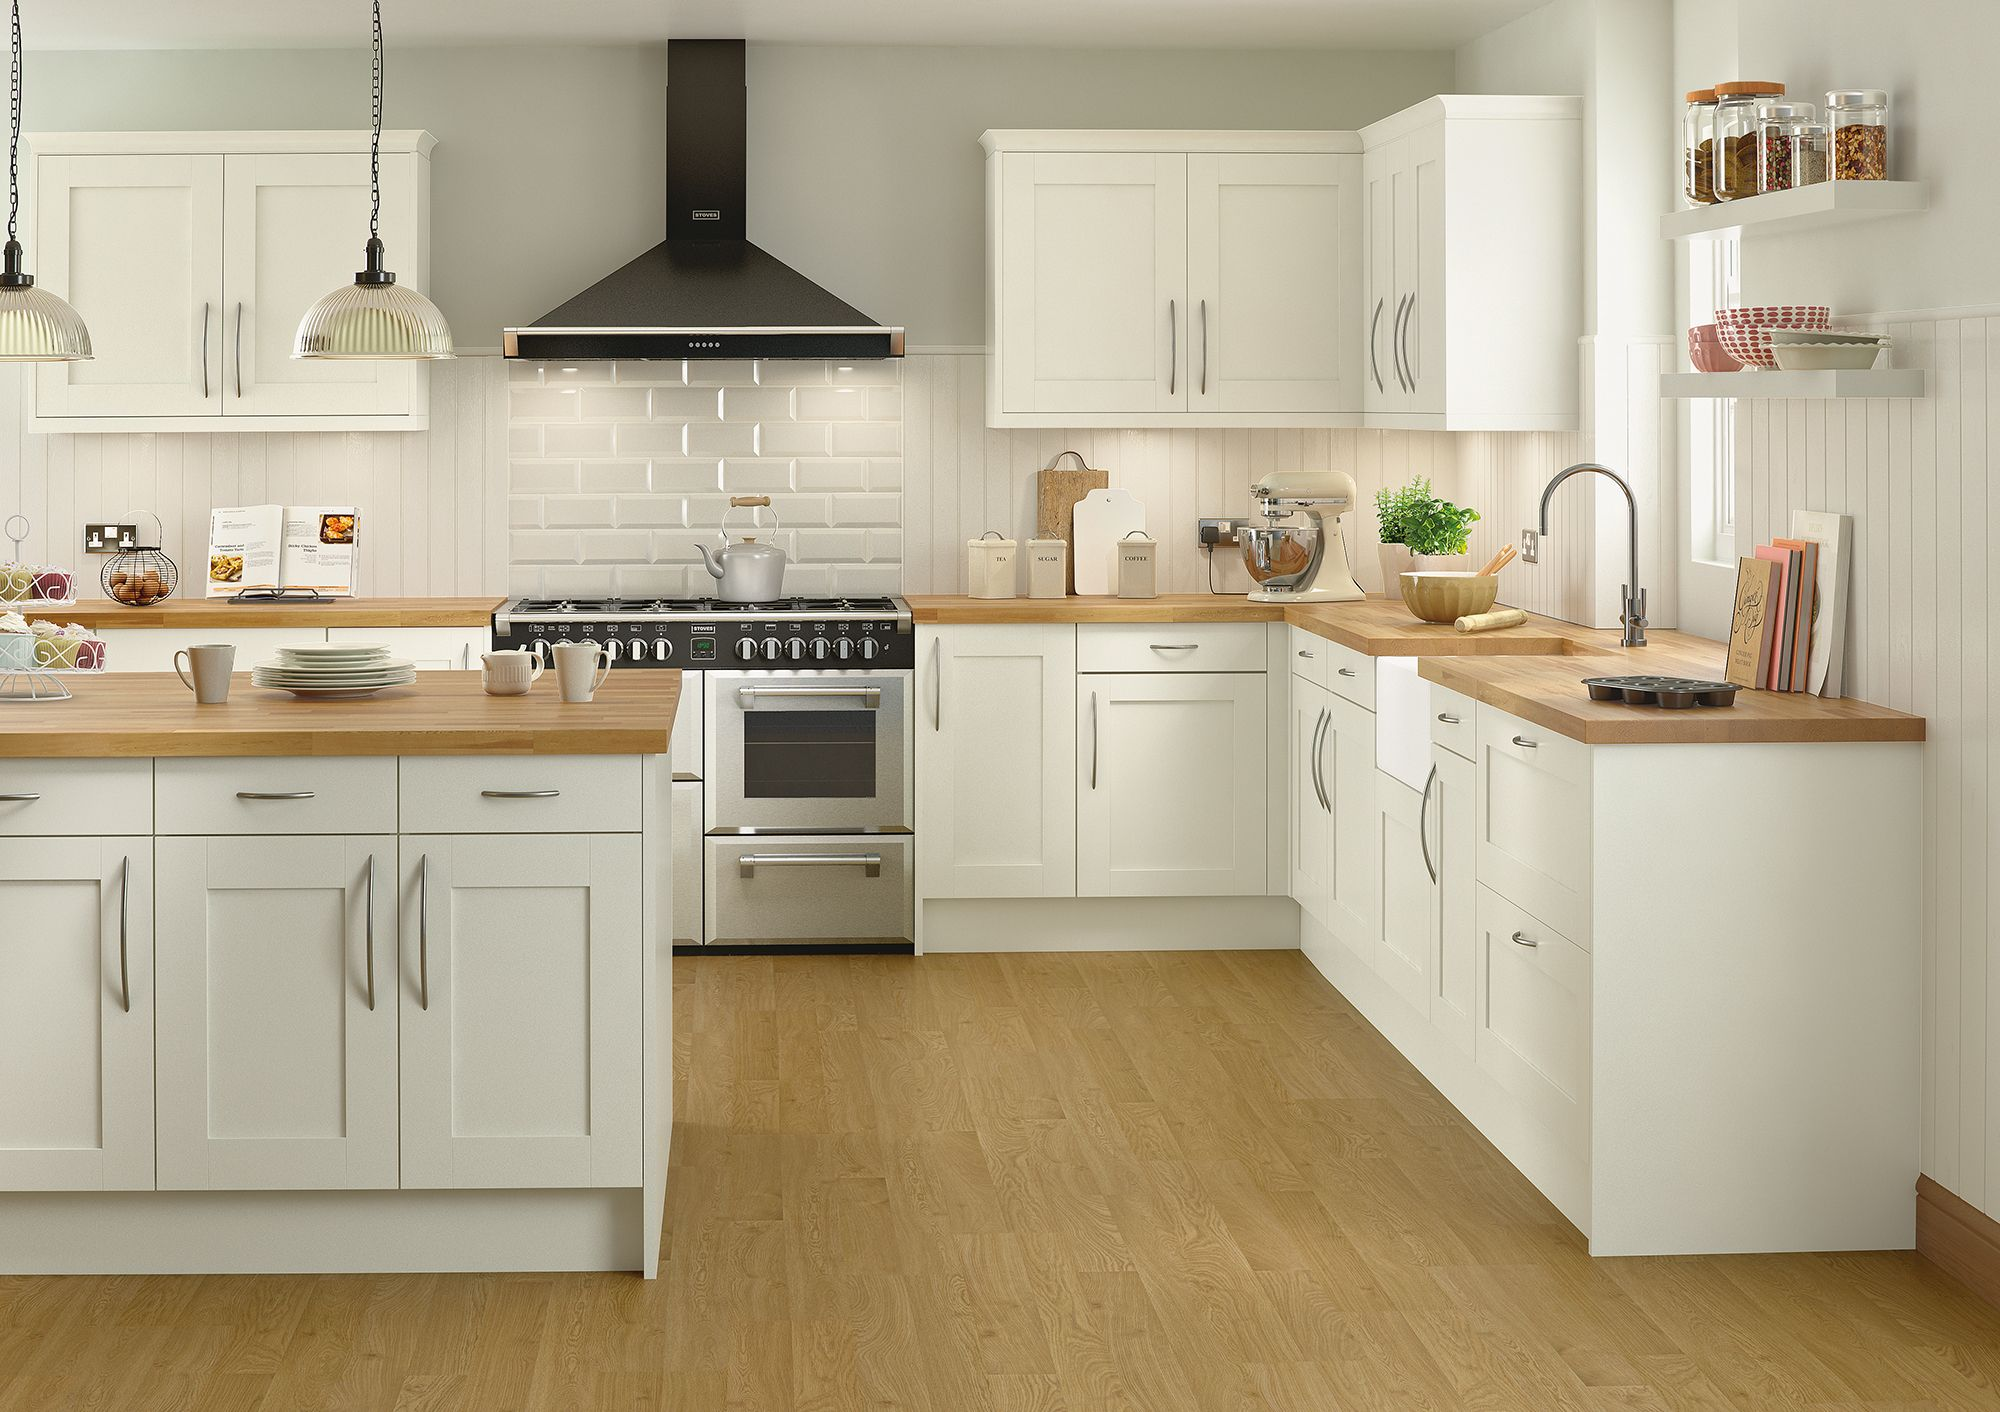 A modern, classic kitchen with a touch of French